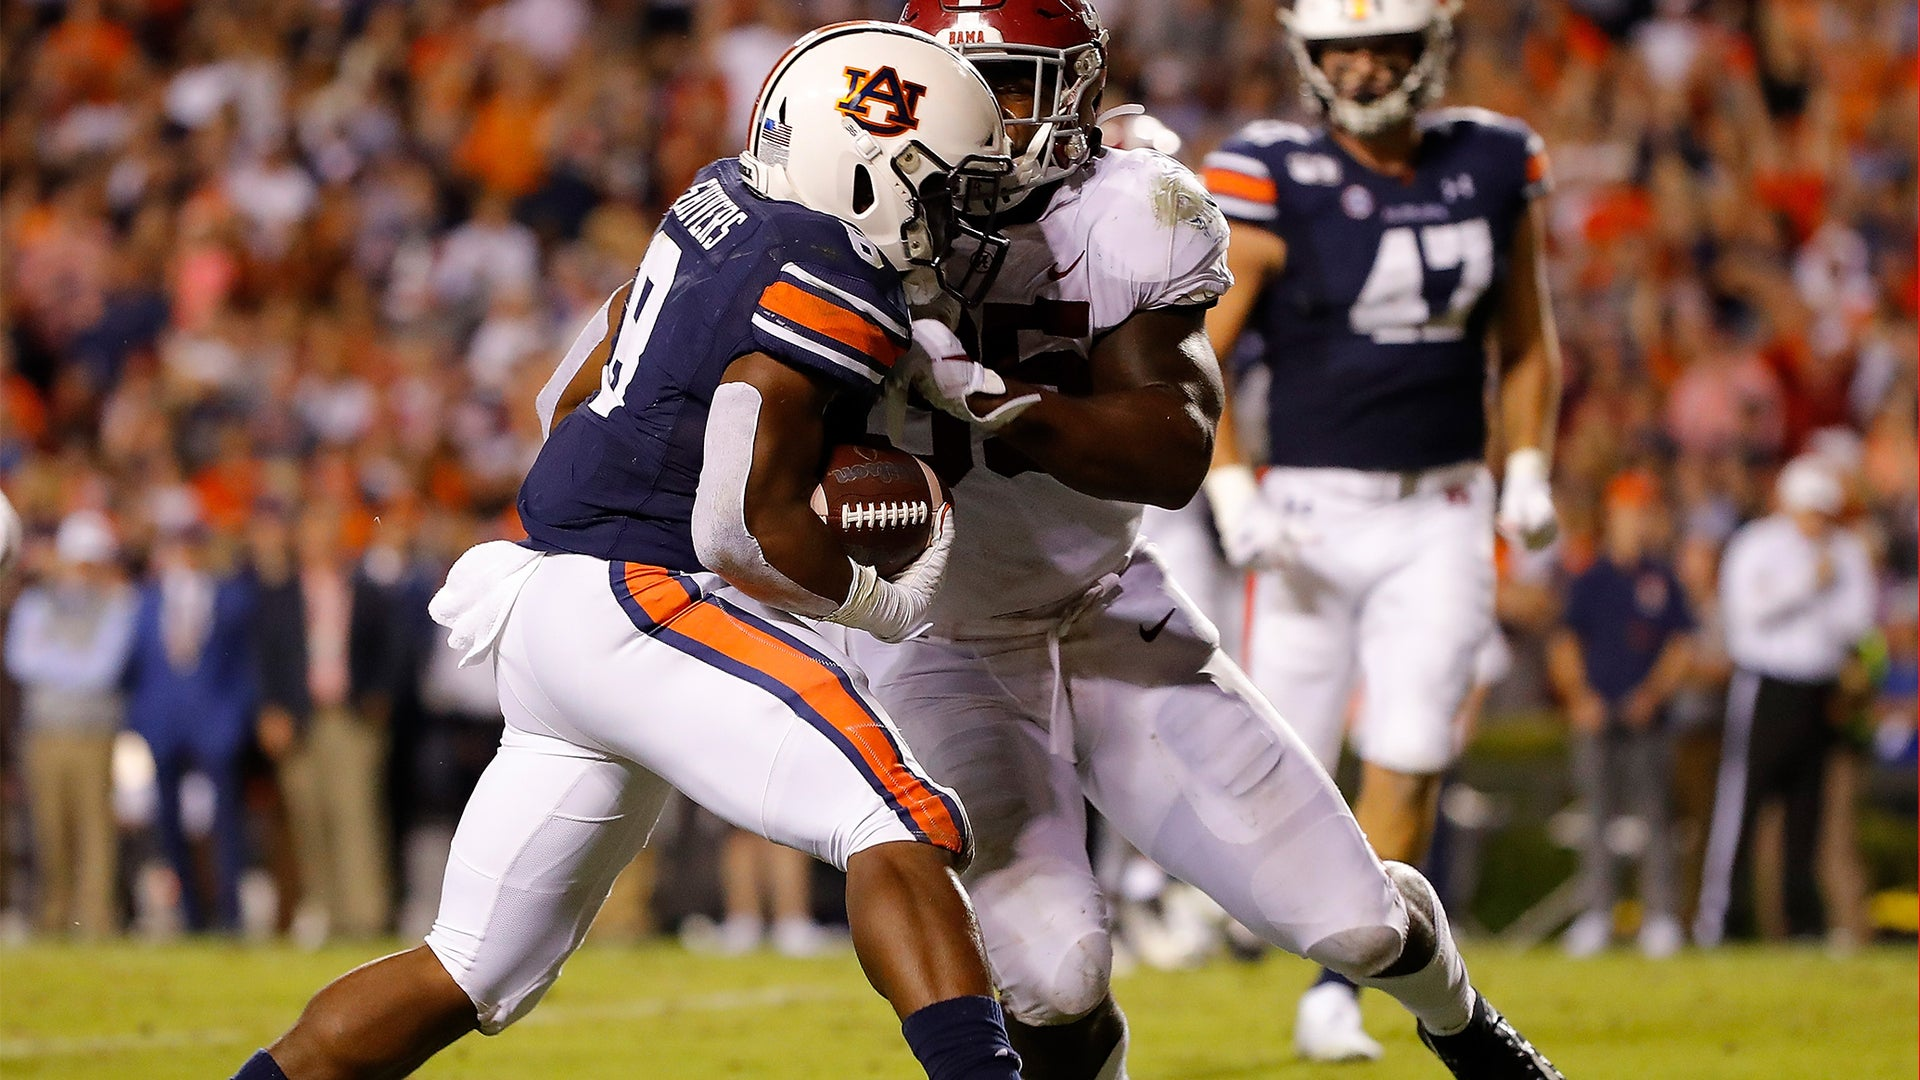 Shaun Shivers of the Auburn Tigers rushes for a touchdown in the second half against Shane Lee of the Alabama Crimson Tide